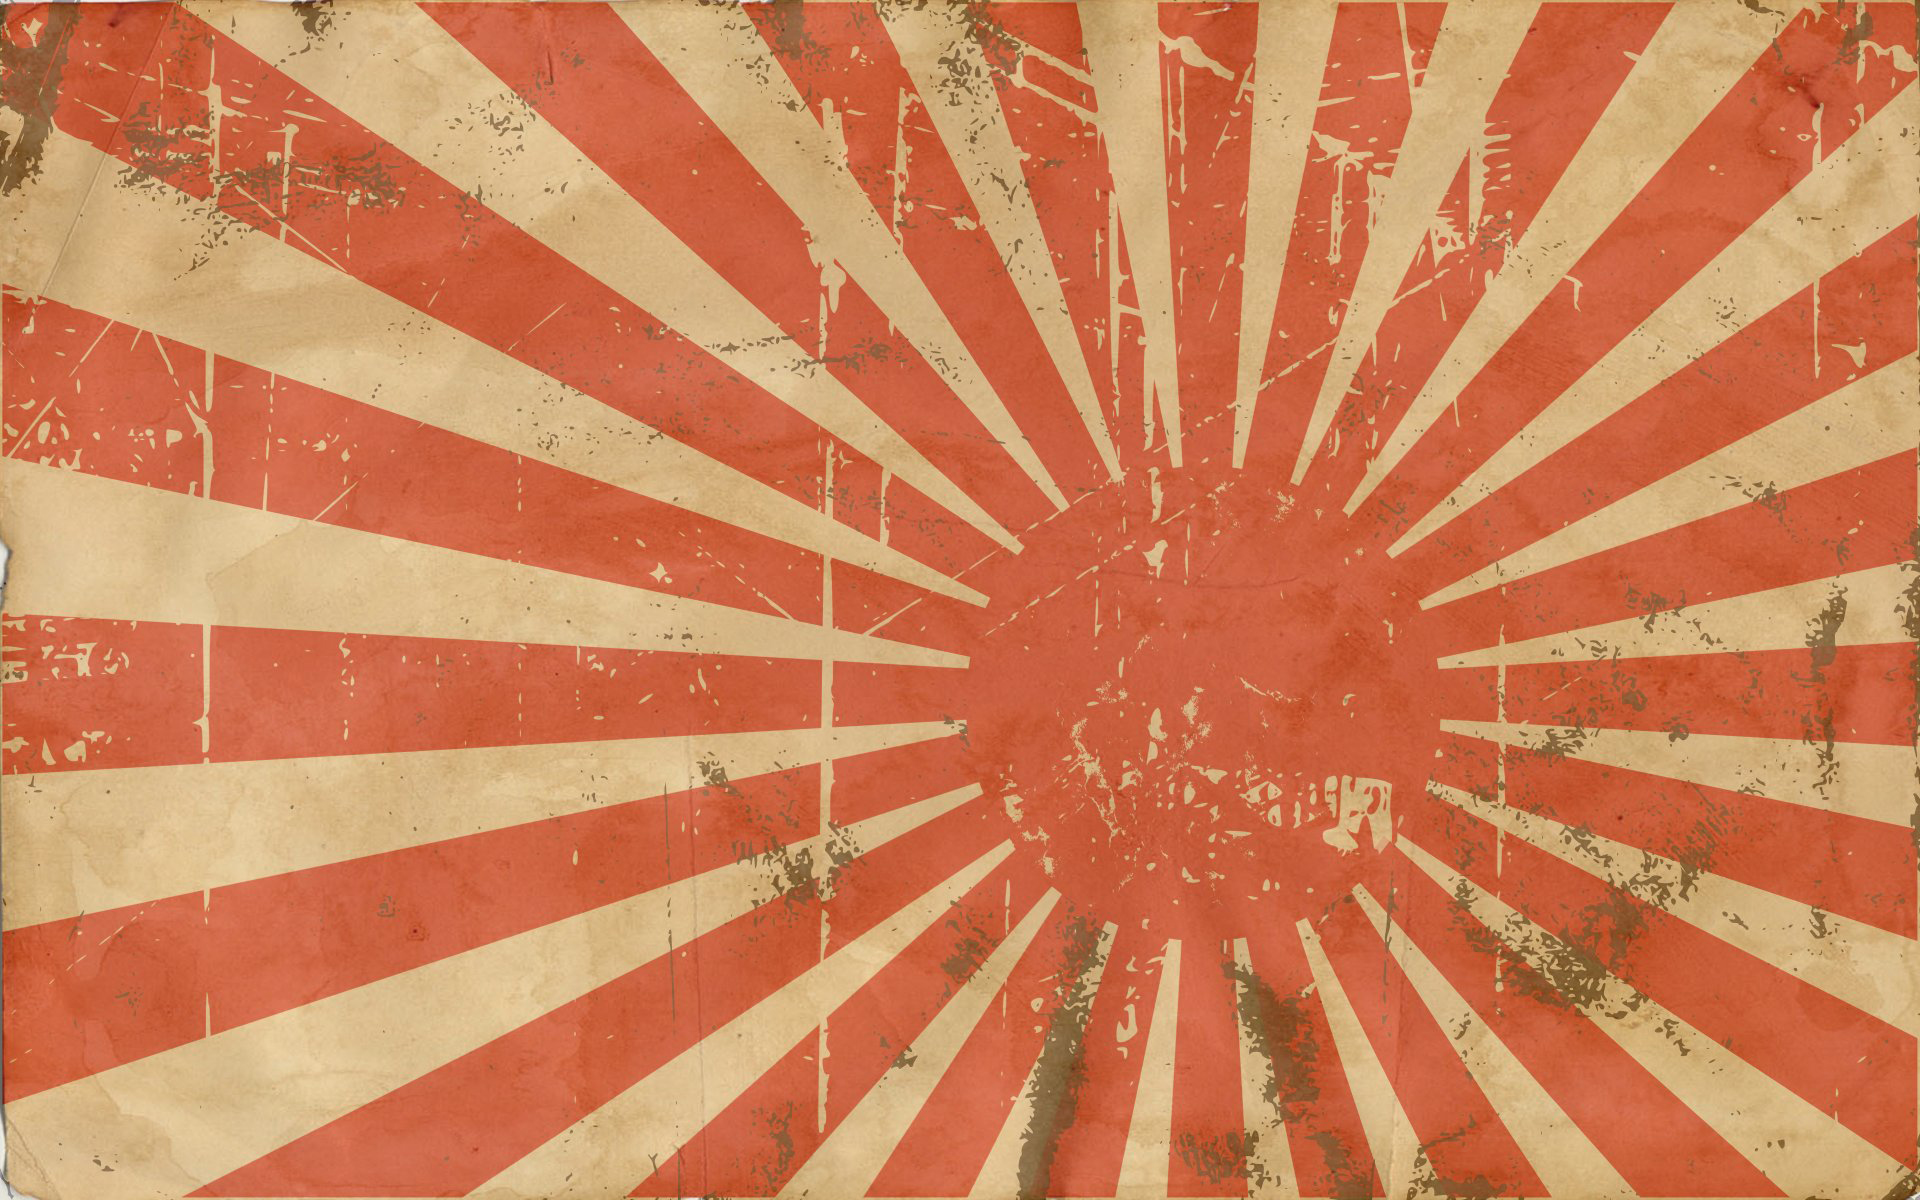 Image: http://www.desktopwallpaperhd.net/wallpapers/7/9/background-wallpaper-fantasy-pictures-japanese-flag-75145.jpg